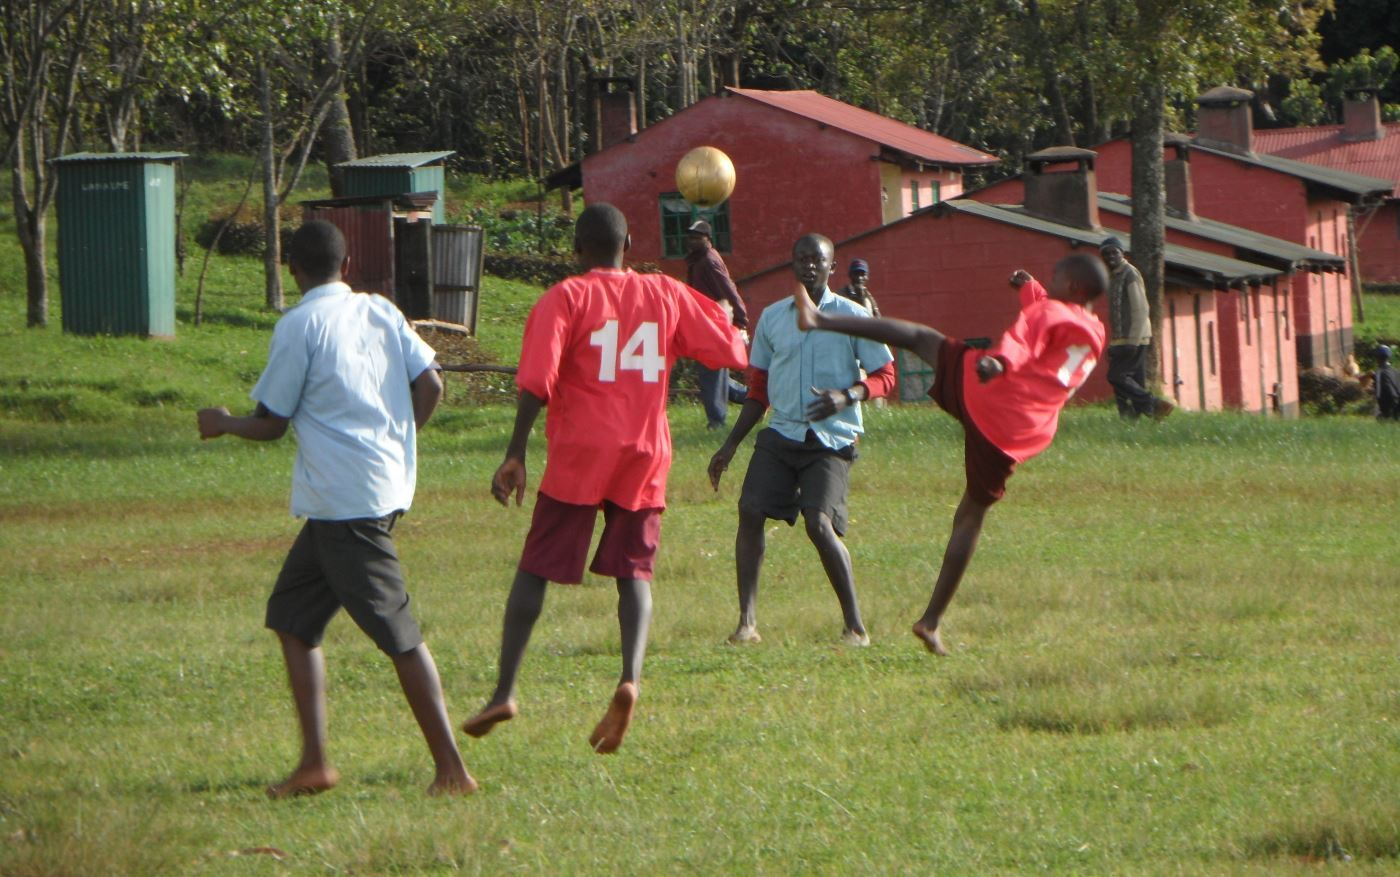 Playing football - Kenya gap year program